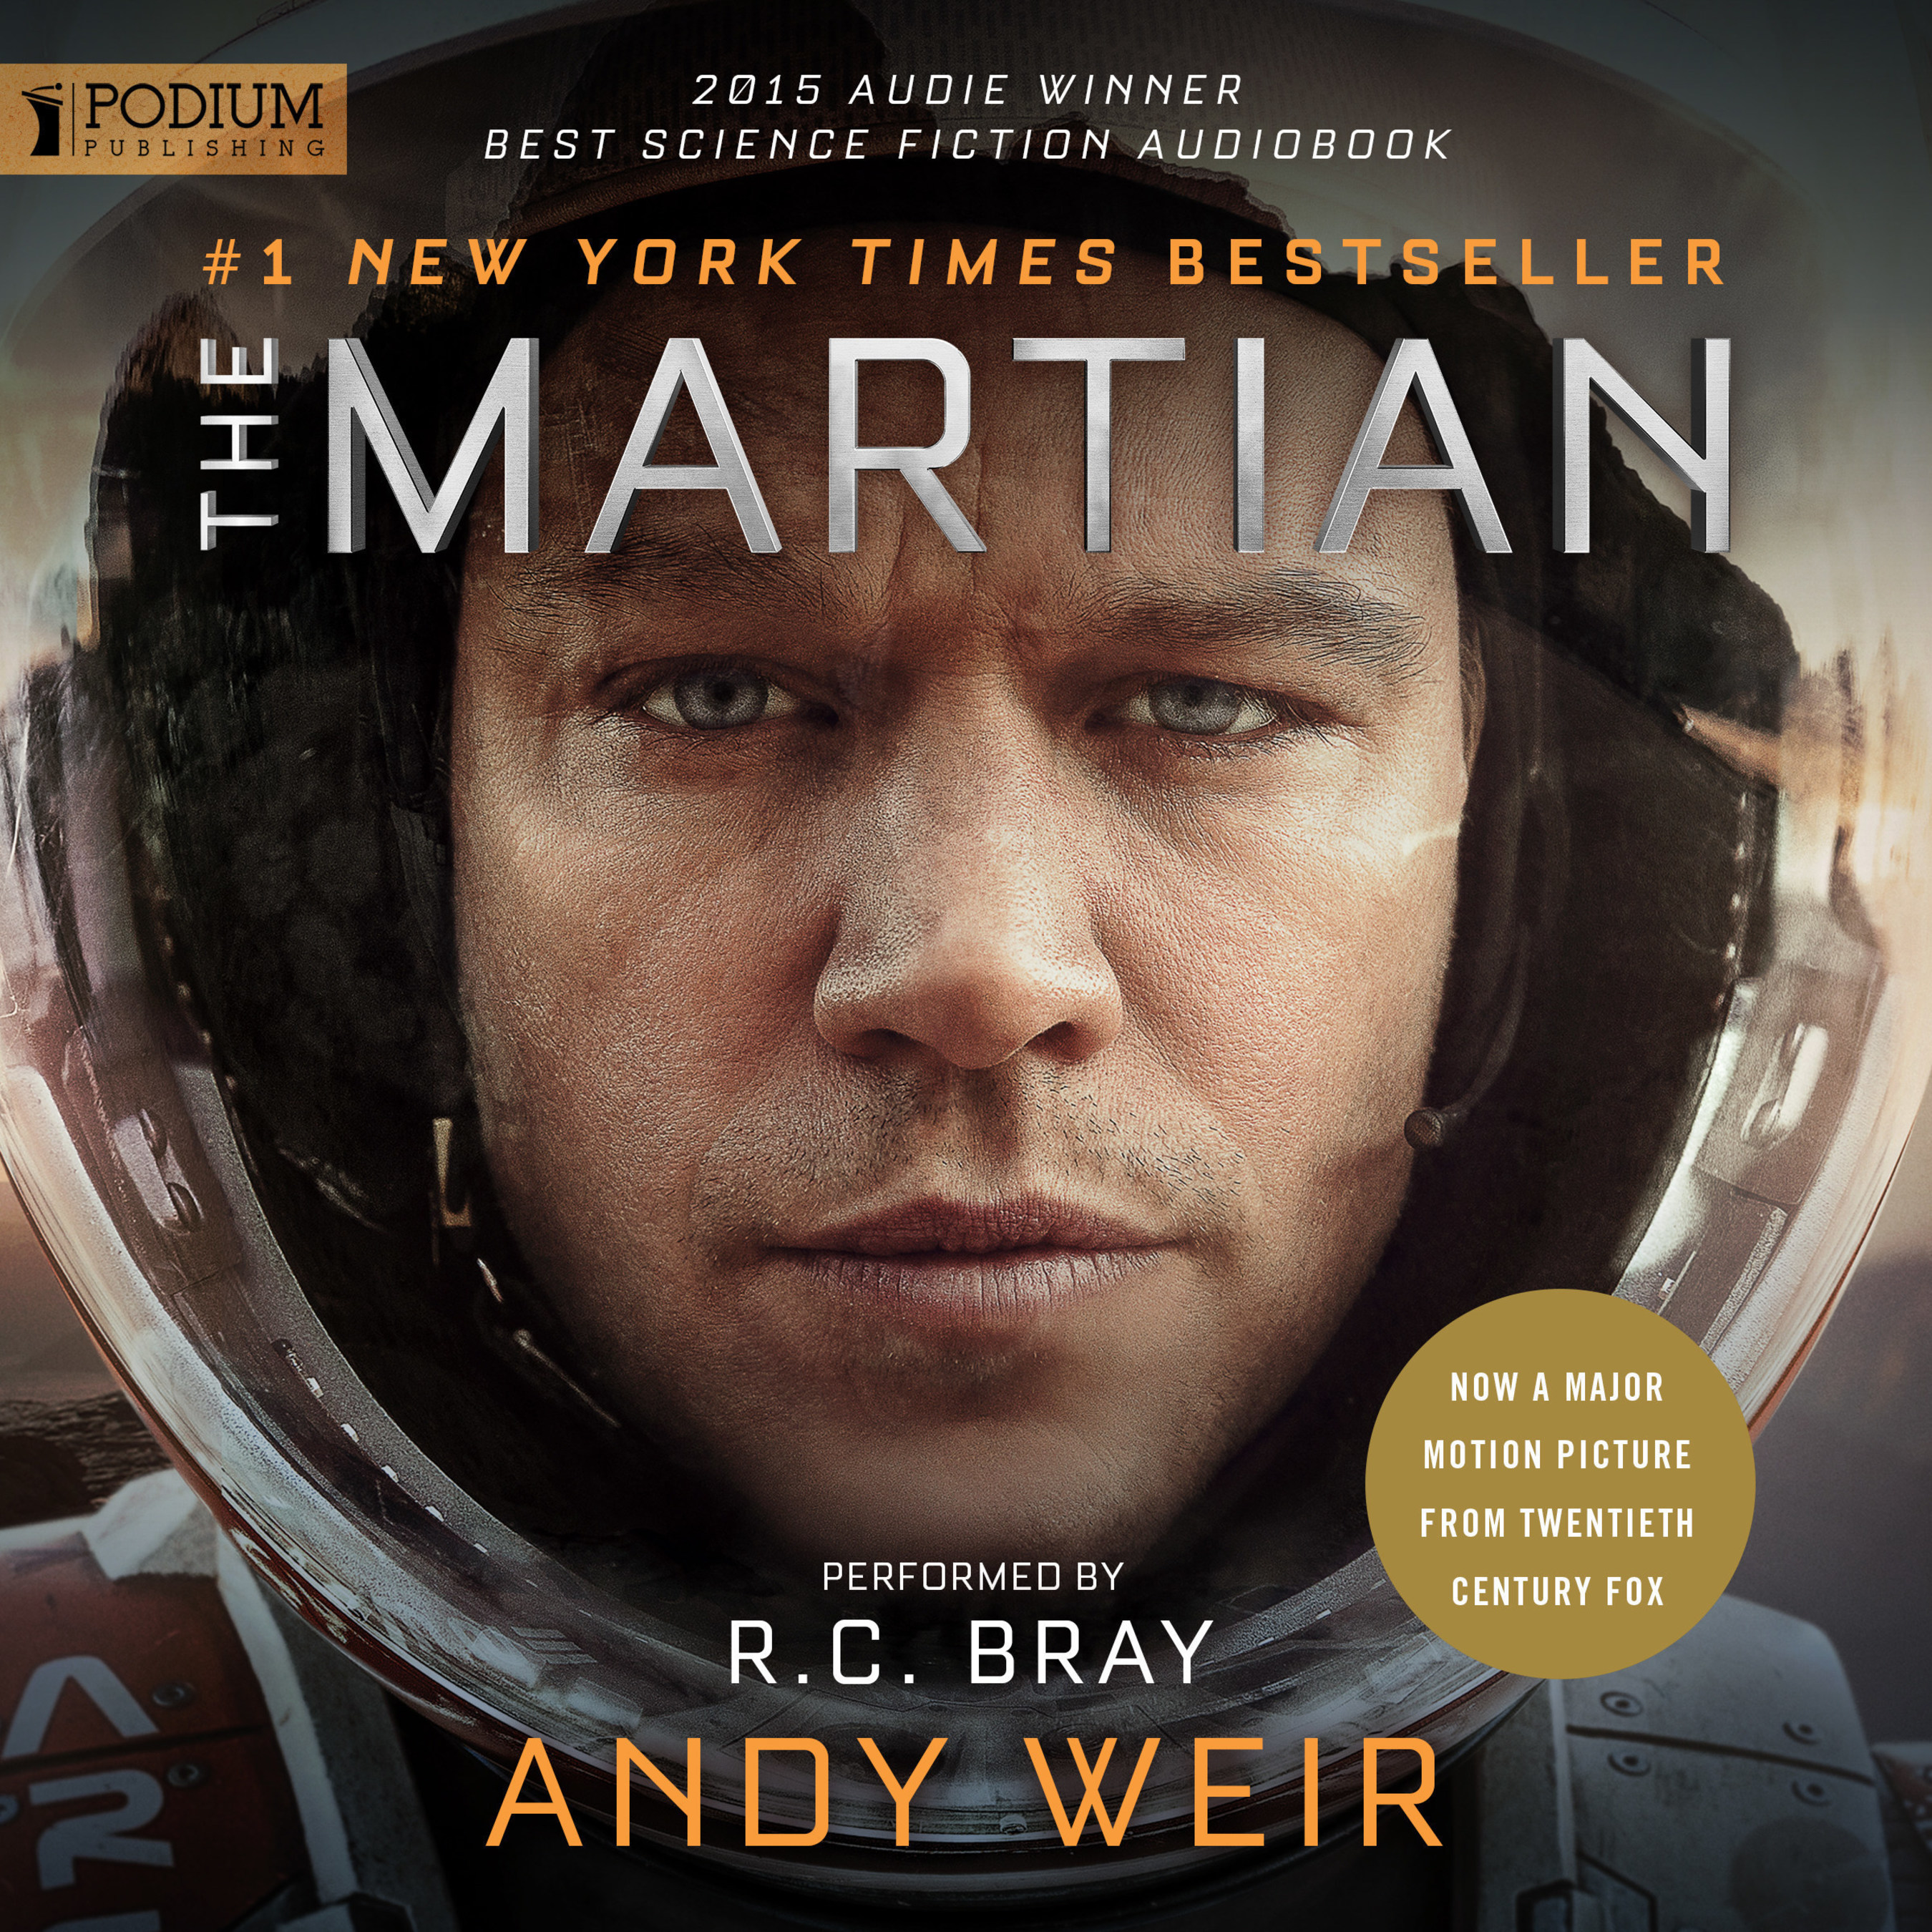 """Podium Publishing's audiobook version of Andy Weir's novel """"The Martian"""" has surpassed 100,000 ratings on Amazon's Audible.com, affirming it as one of the most beloved audiobooks ever produced. The Ridley Scott-directed film adaptation starring Matt Damon is nominated for seven Academy Awards, including Best Picture."""